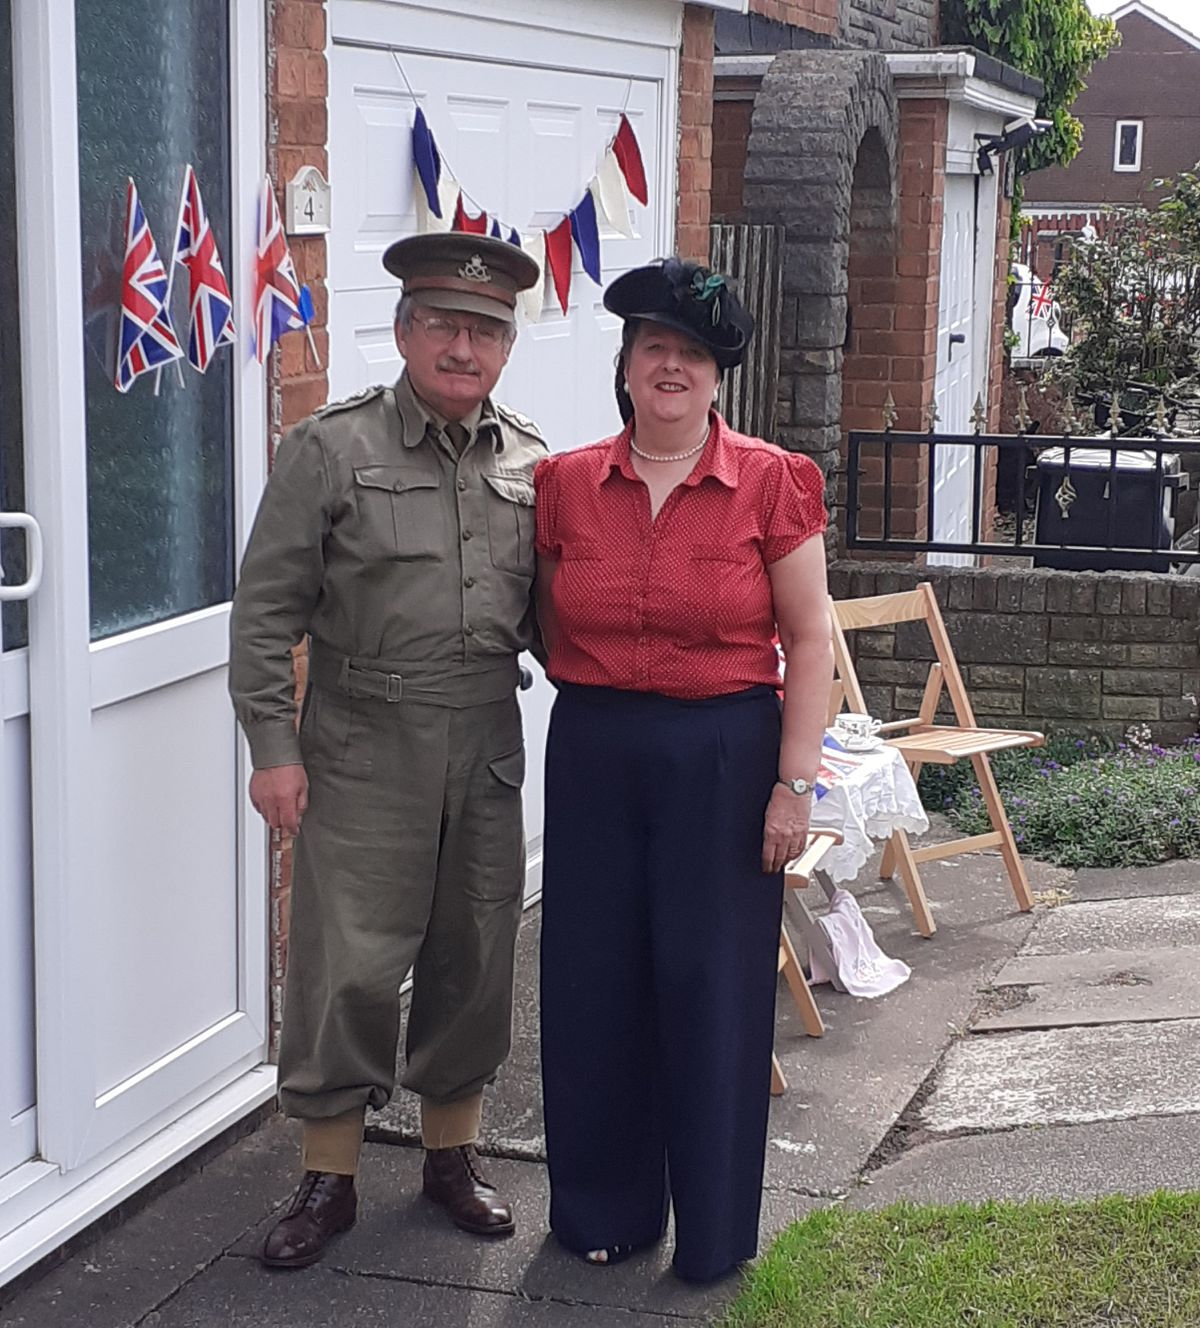 Linda and Bruce Macefield in the spirit in Coseley